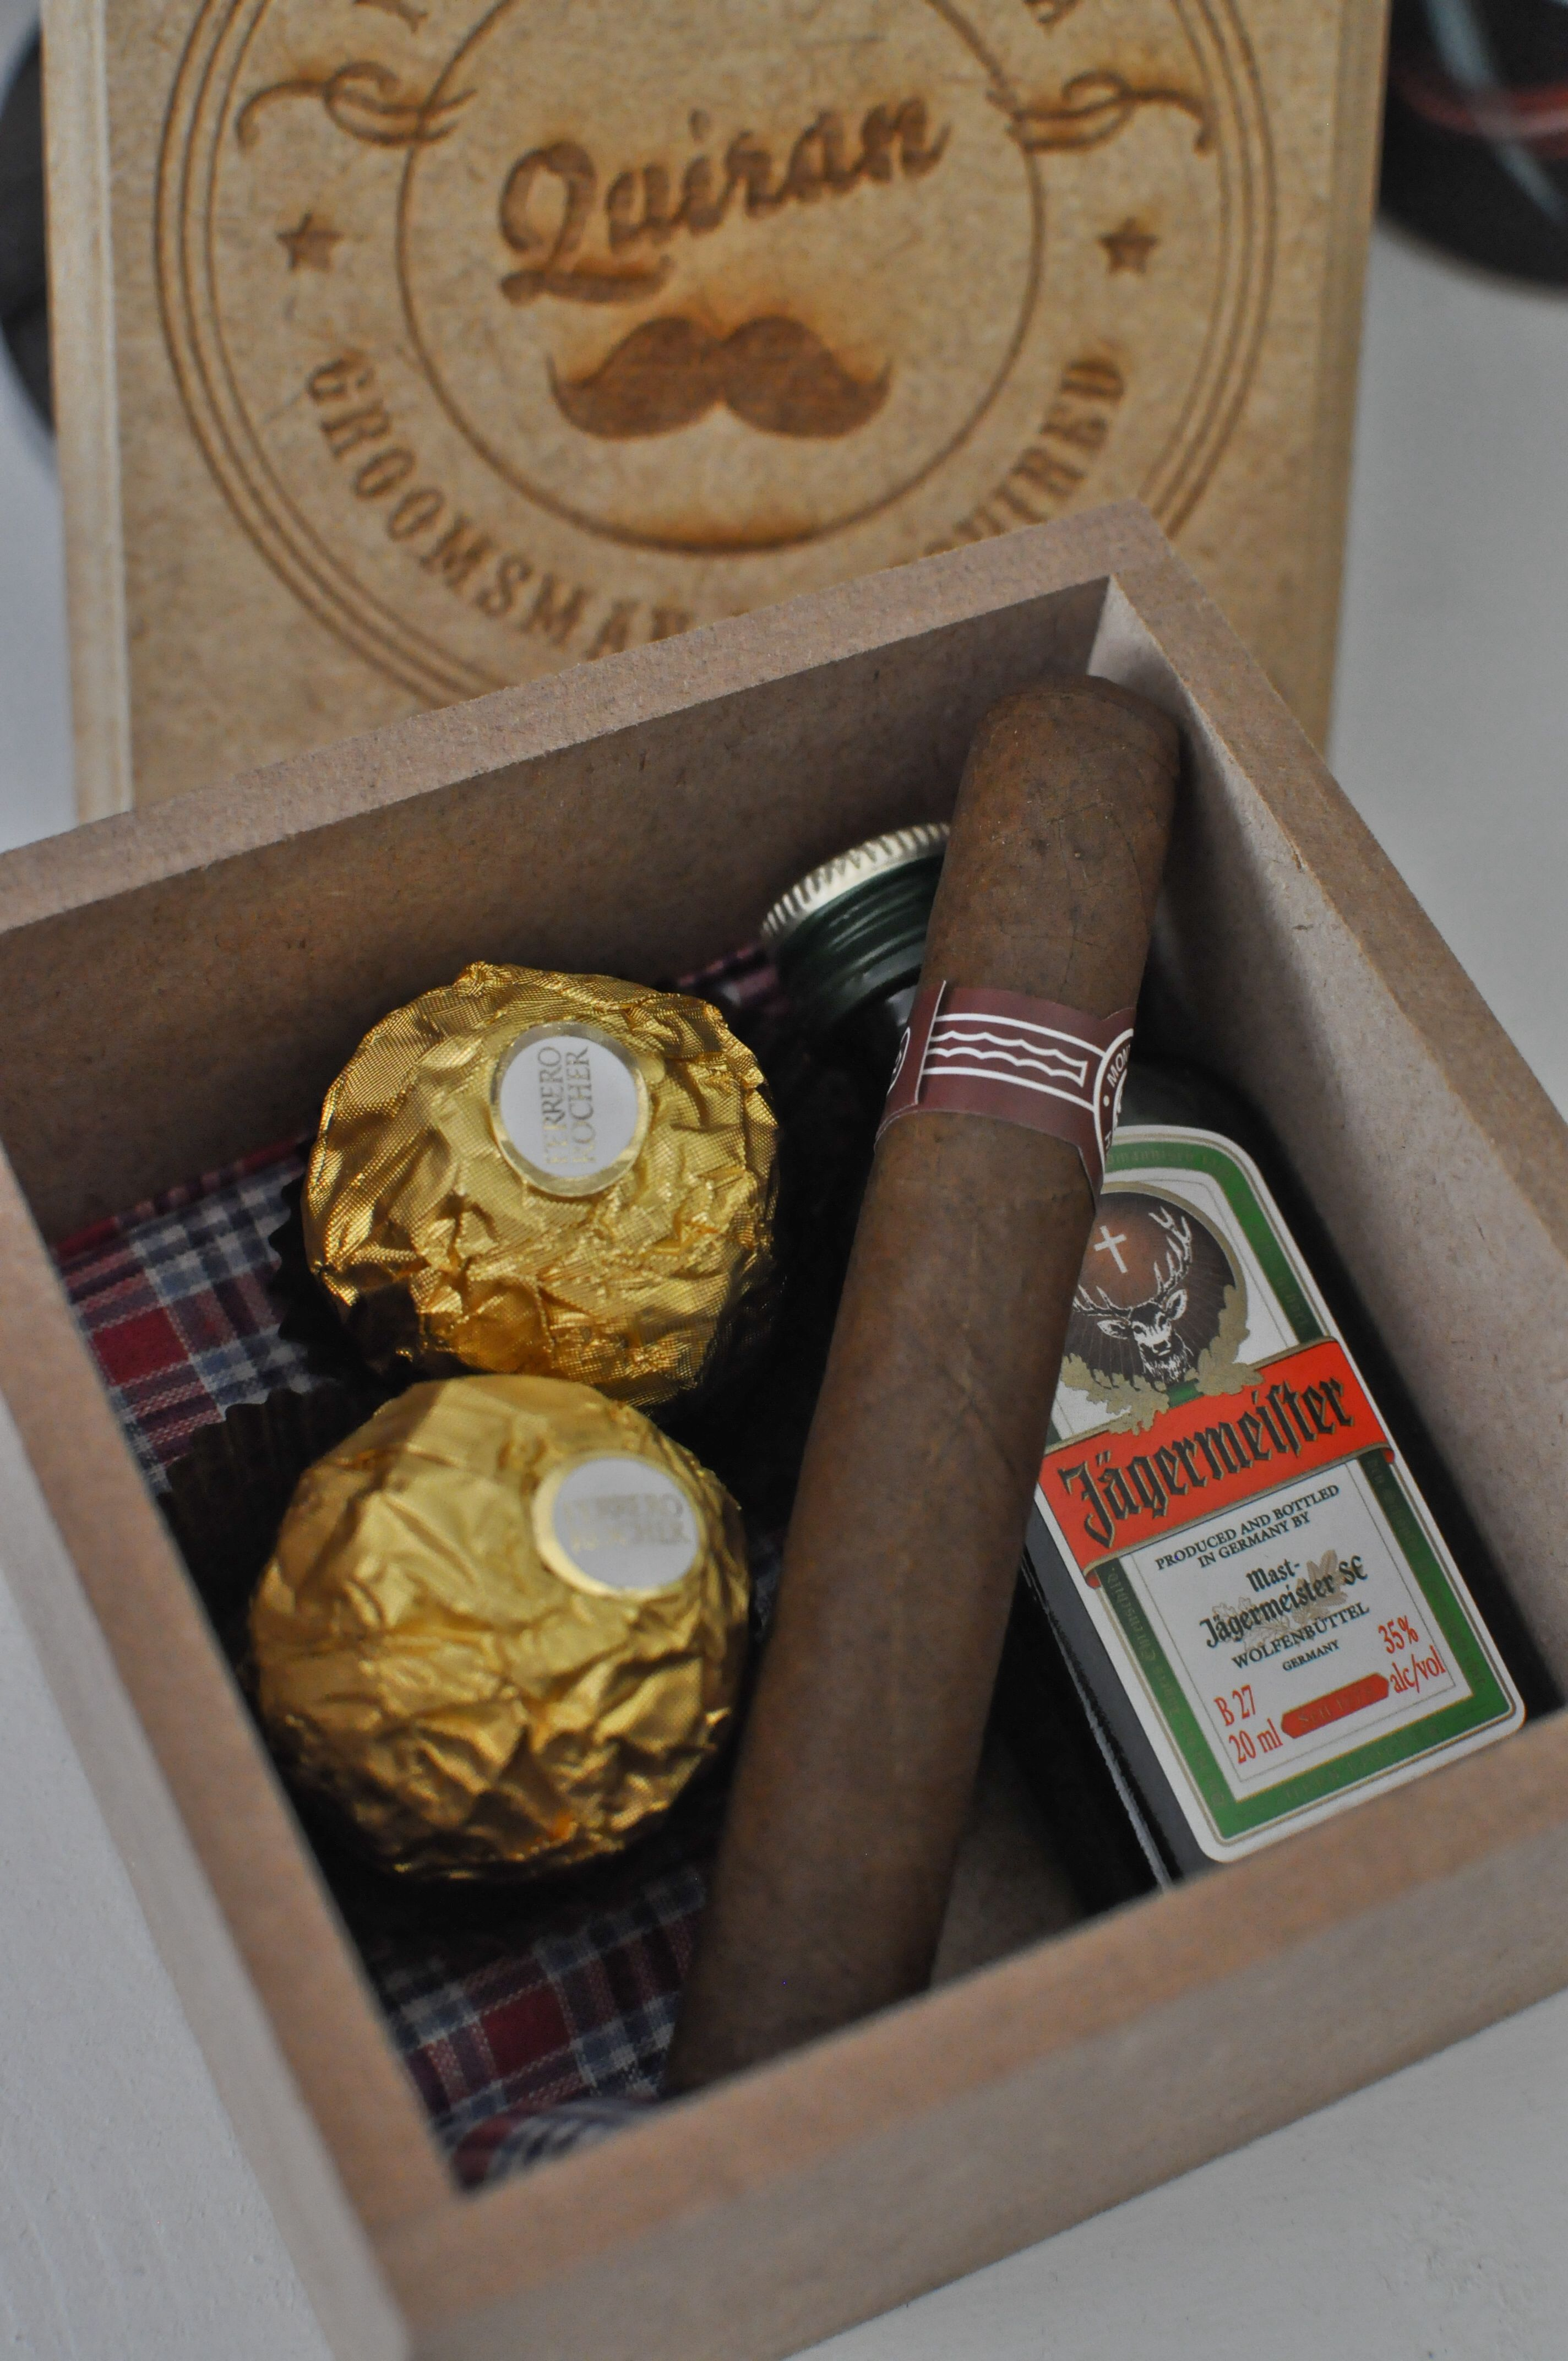 I Like The Idea Of Putting Ferrero Rocher In A Box With Few Other Items Not Cigar Alcohol